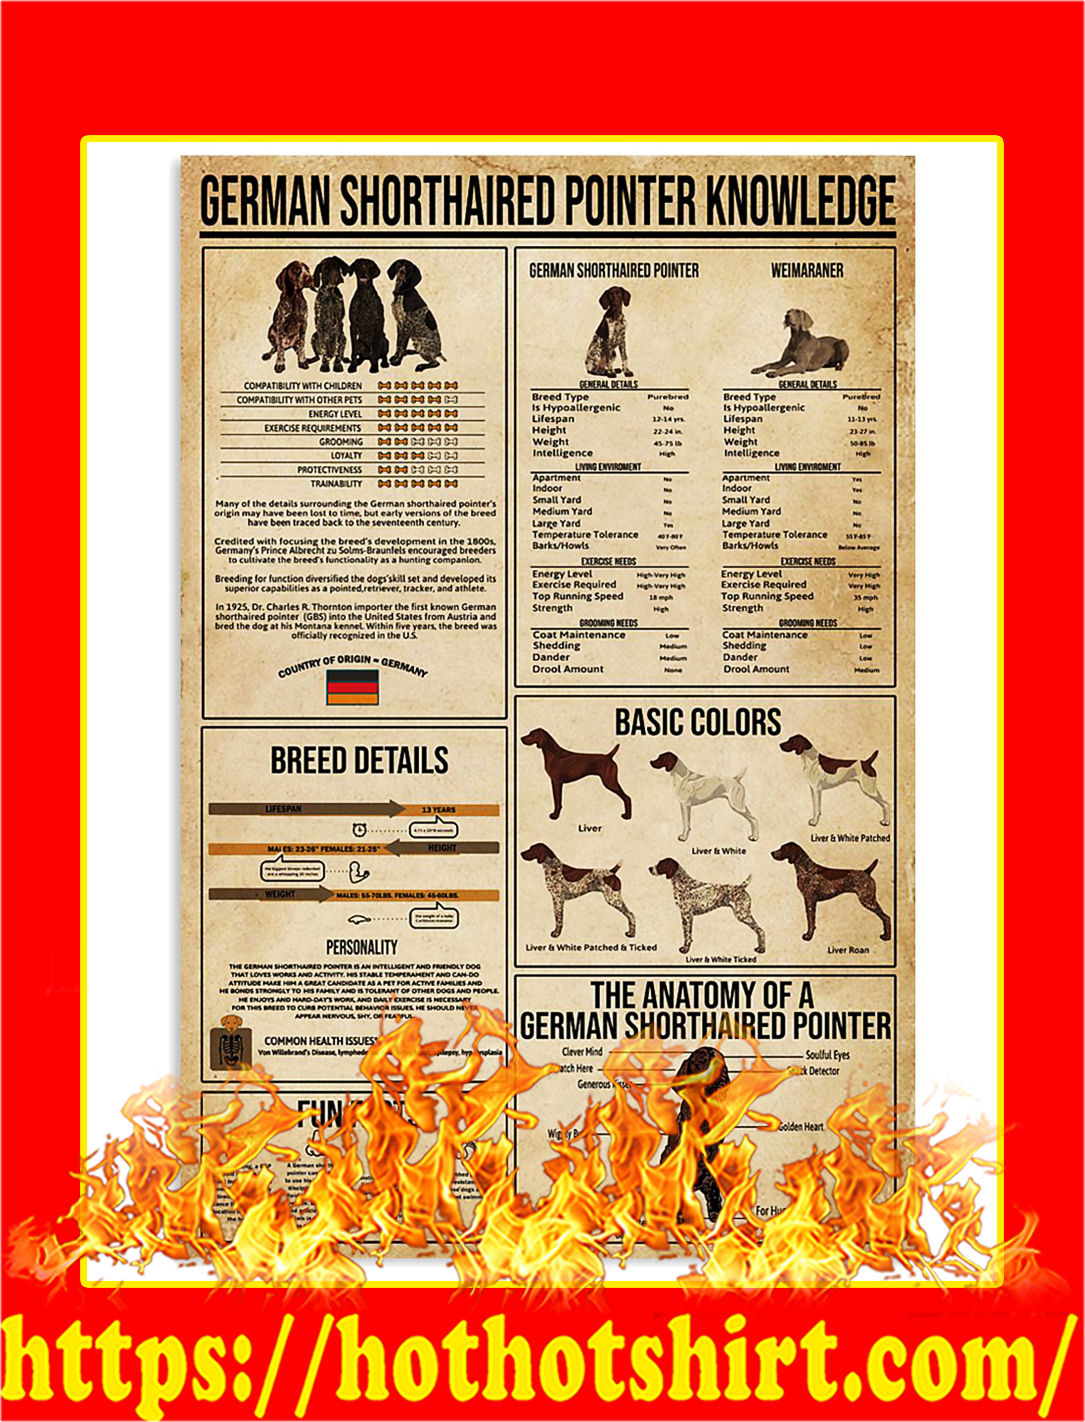 German Shorthaired Pointer Knowledge Poster - A3